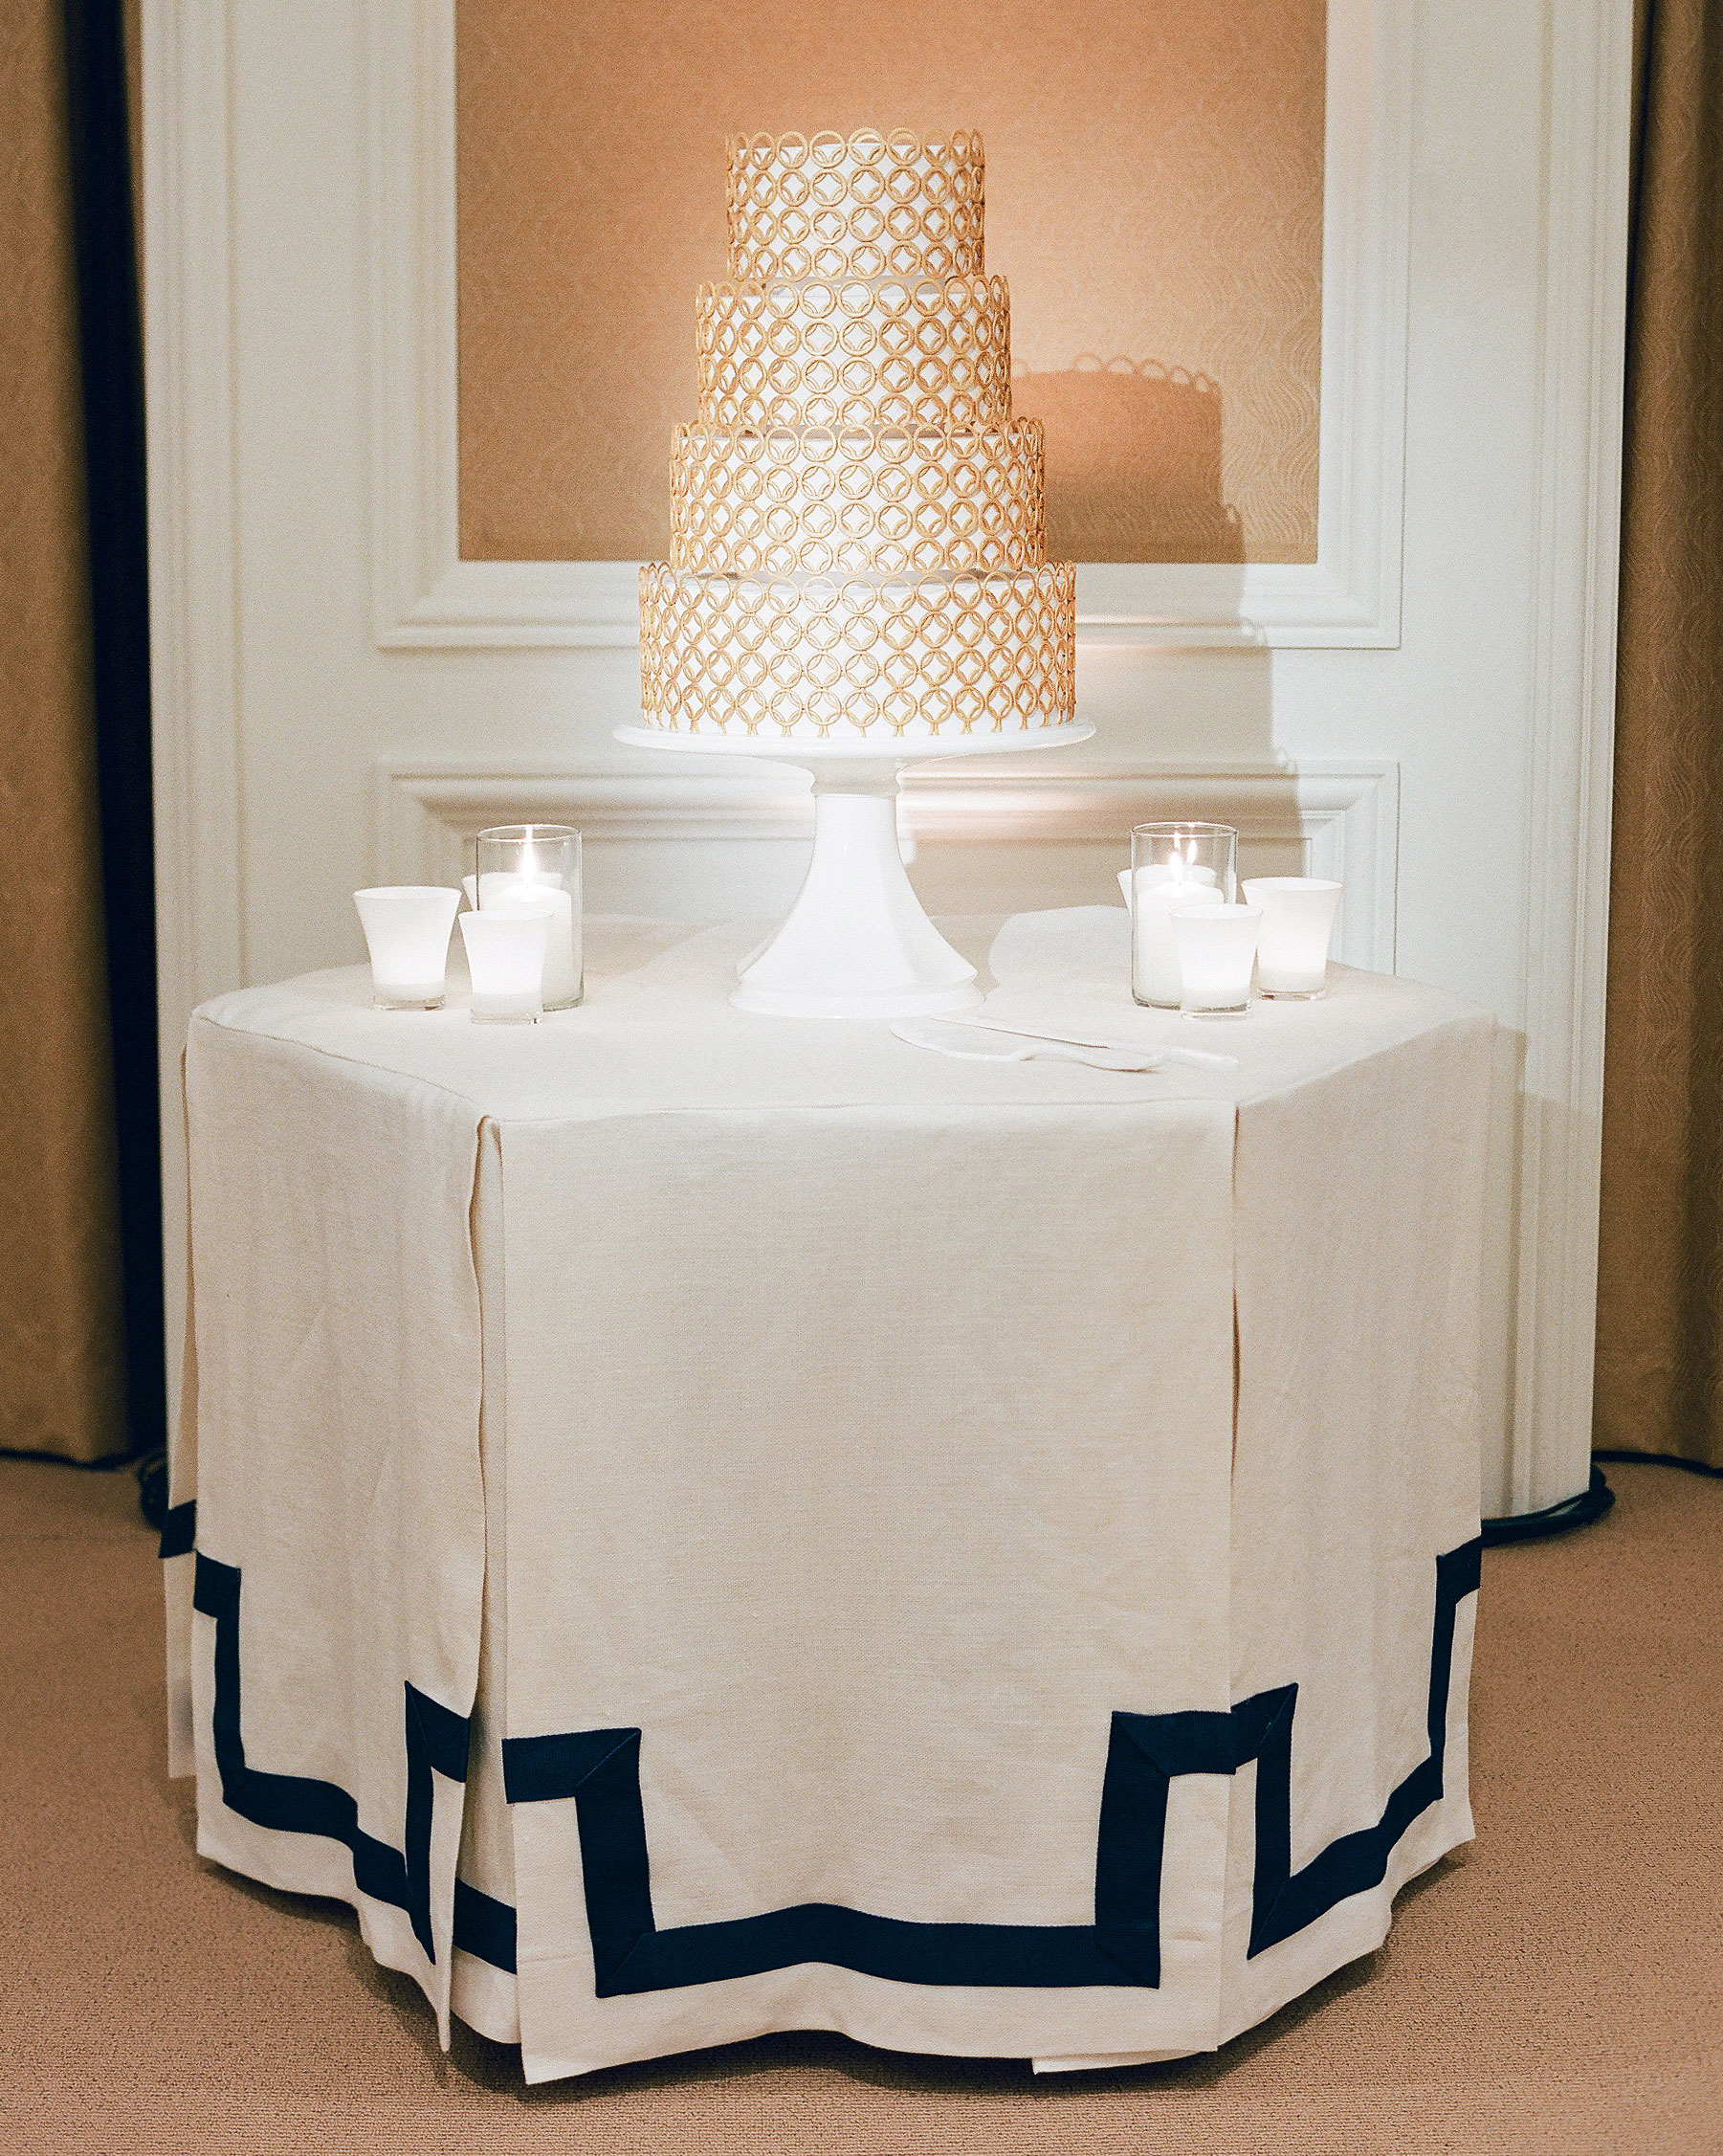 tali-mike-wedding-california-cake-58950005-s112346.jpg